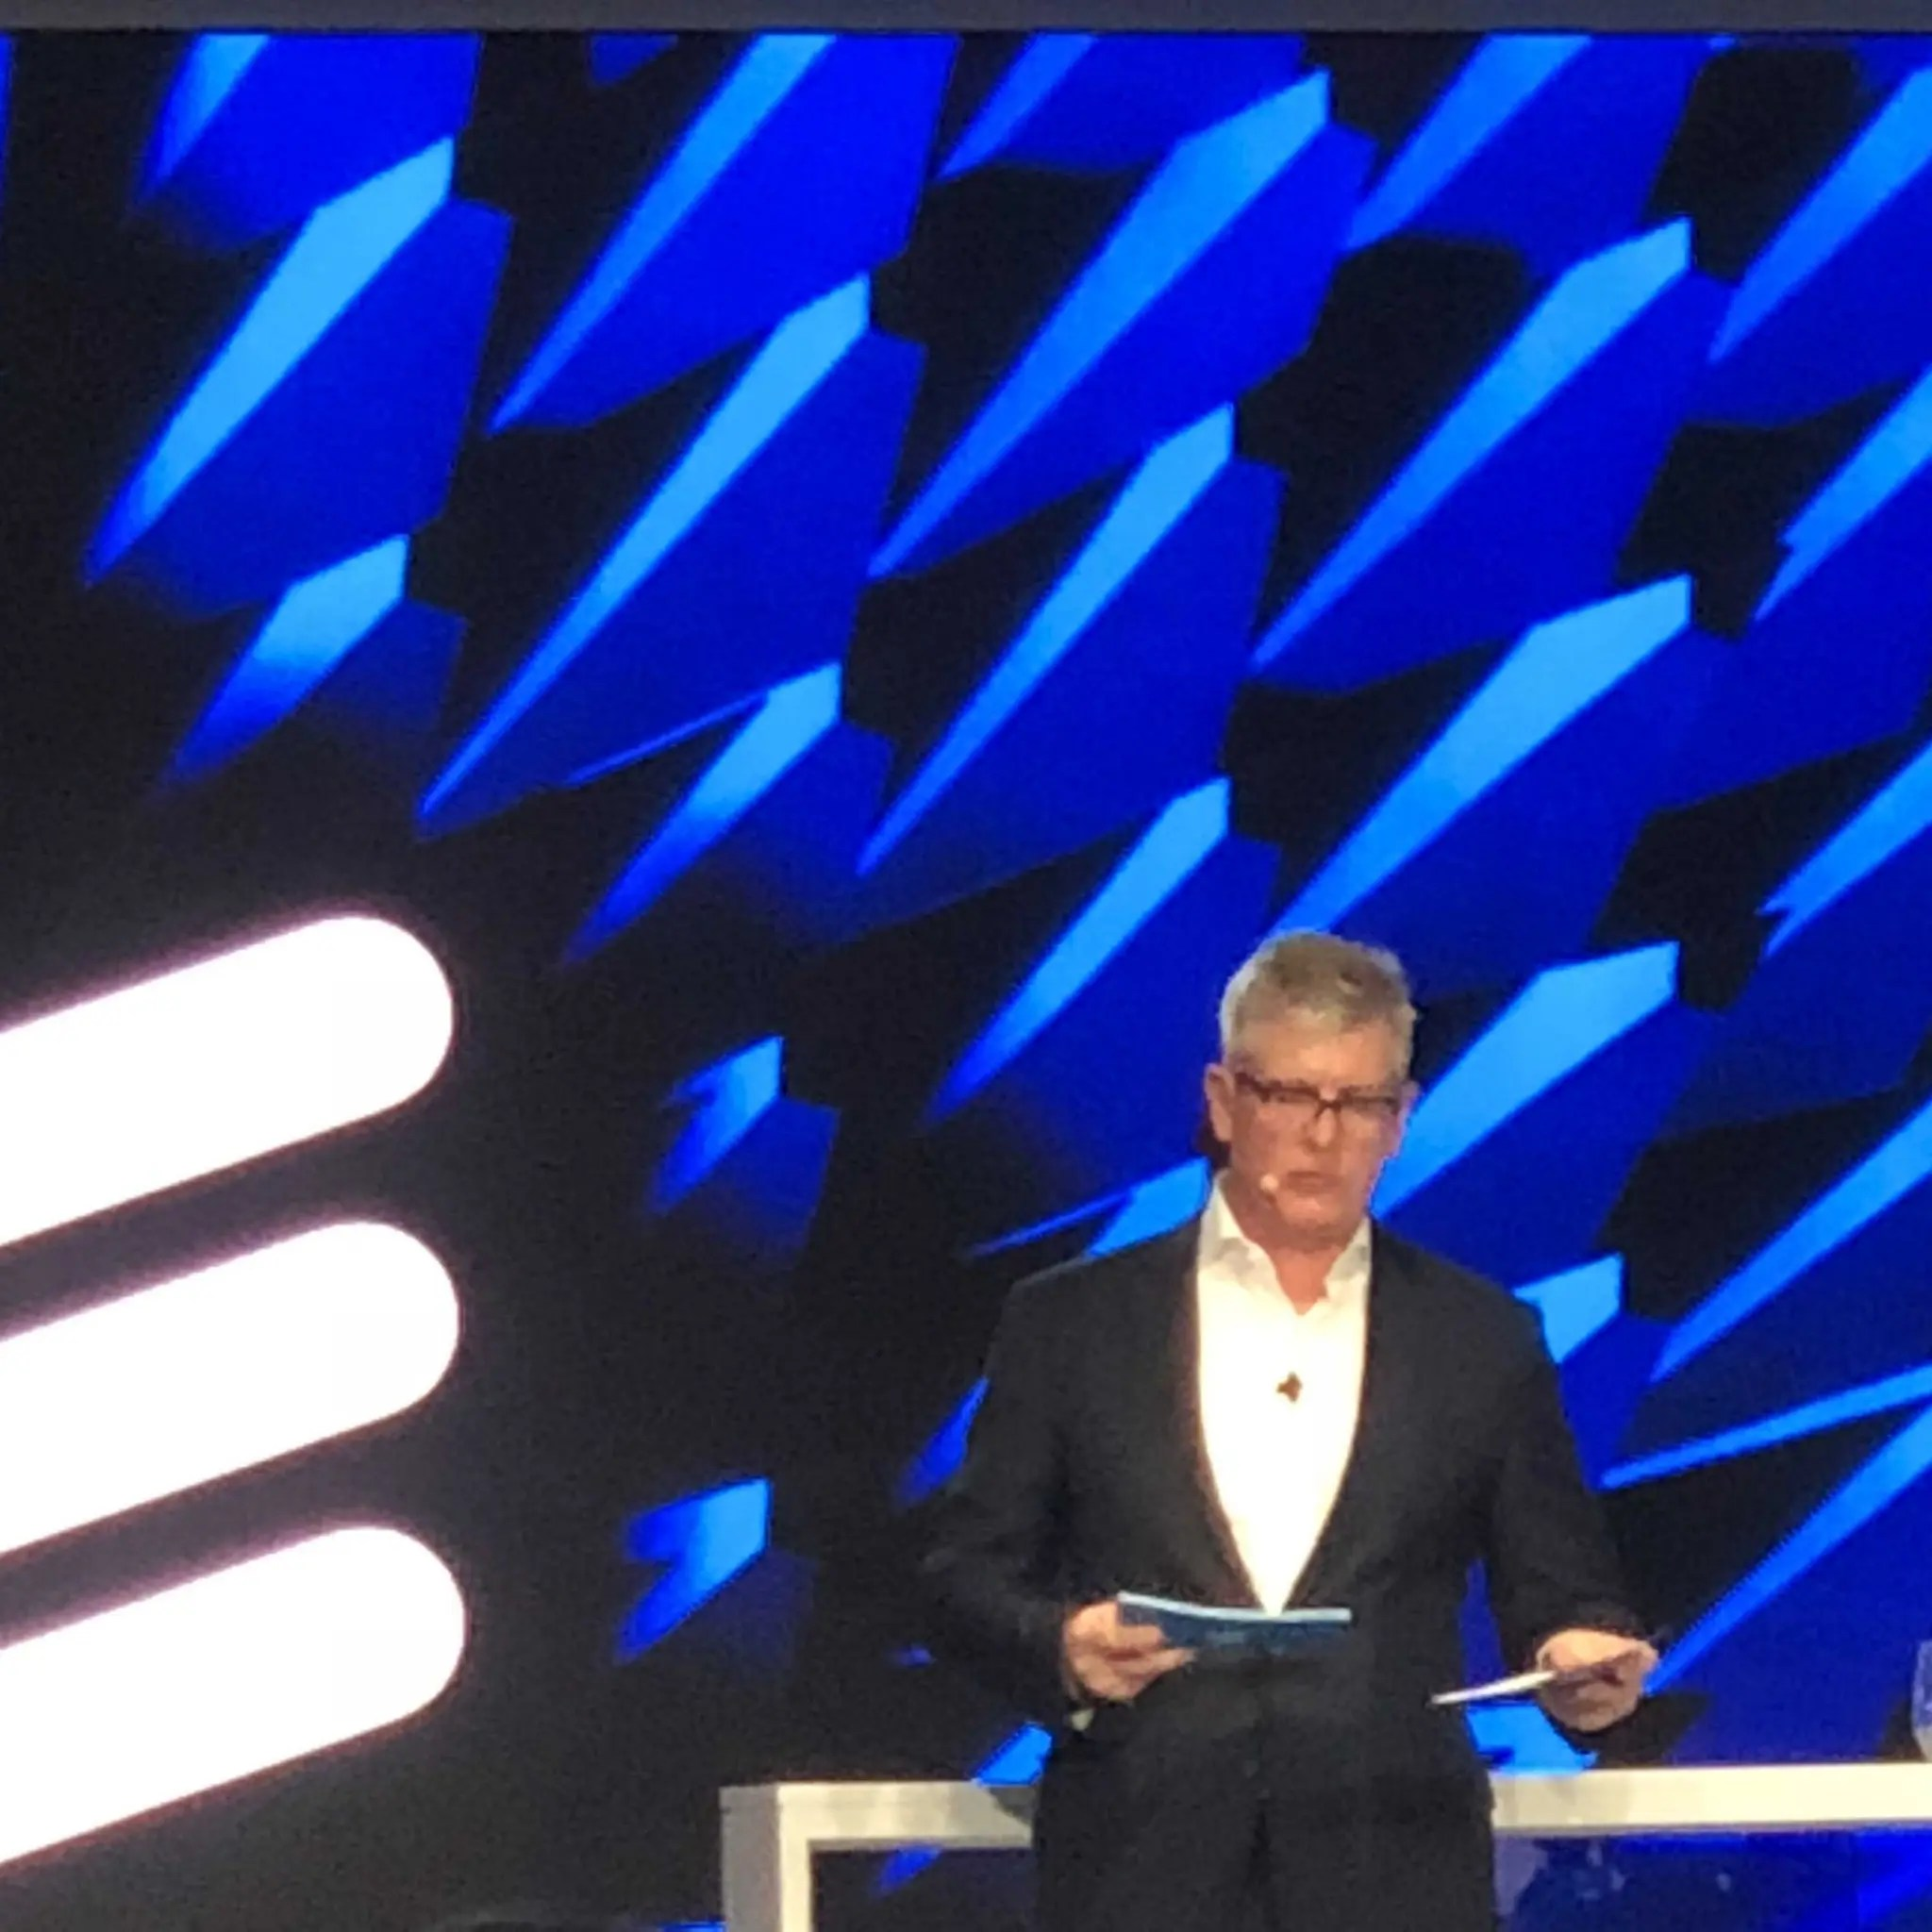 Telstra lays out roadmap for 5G